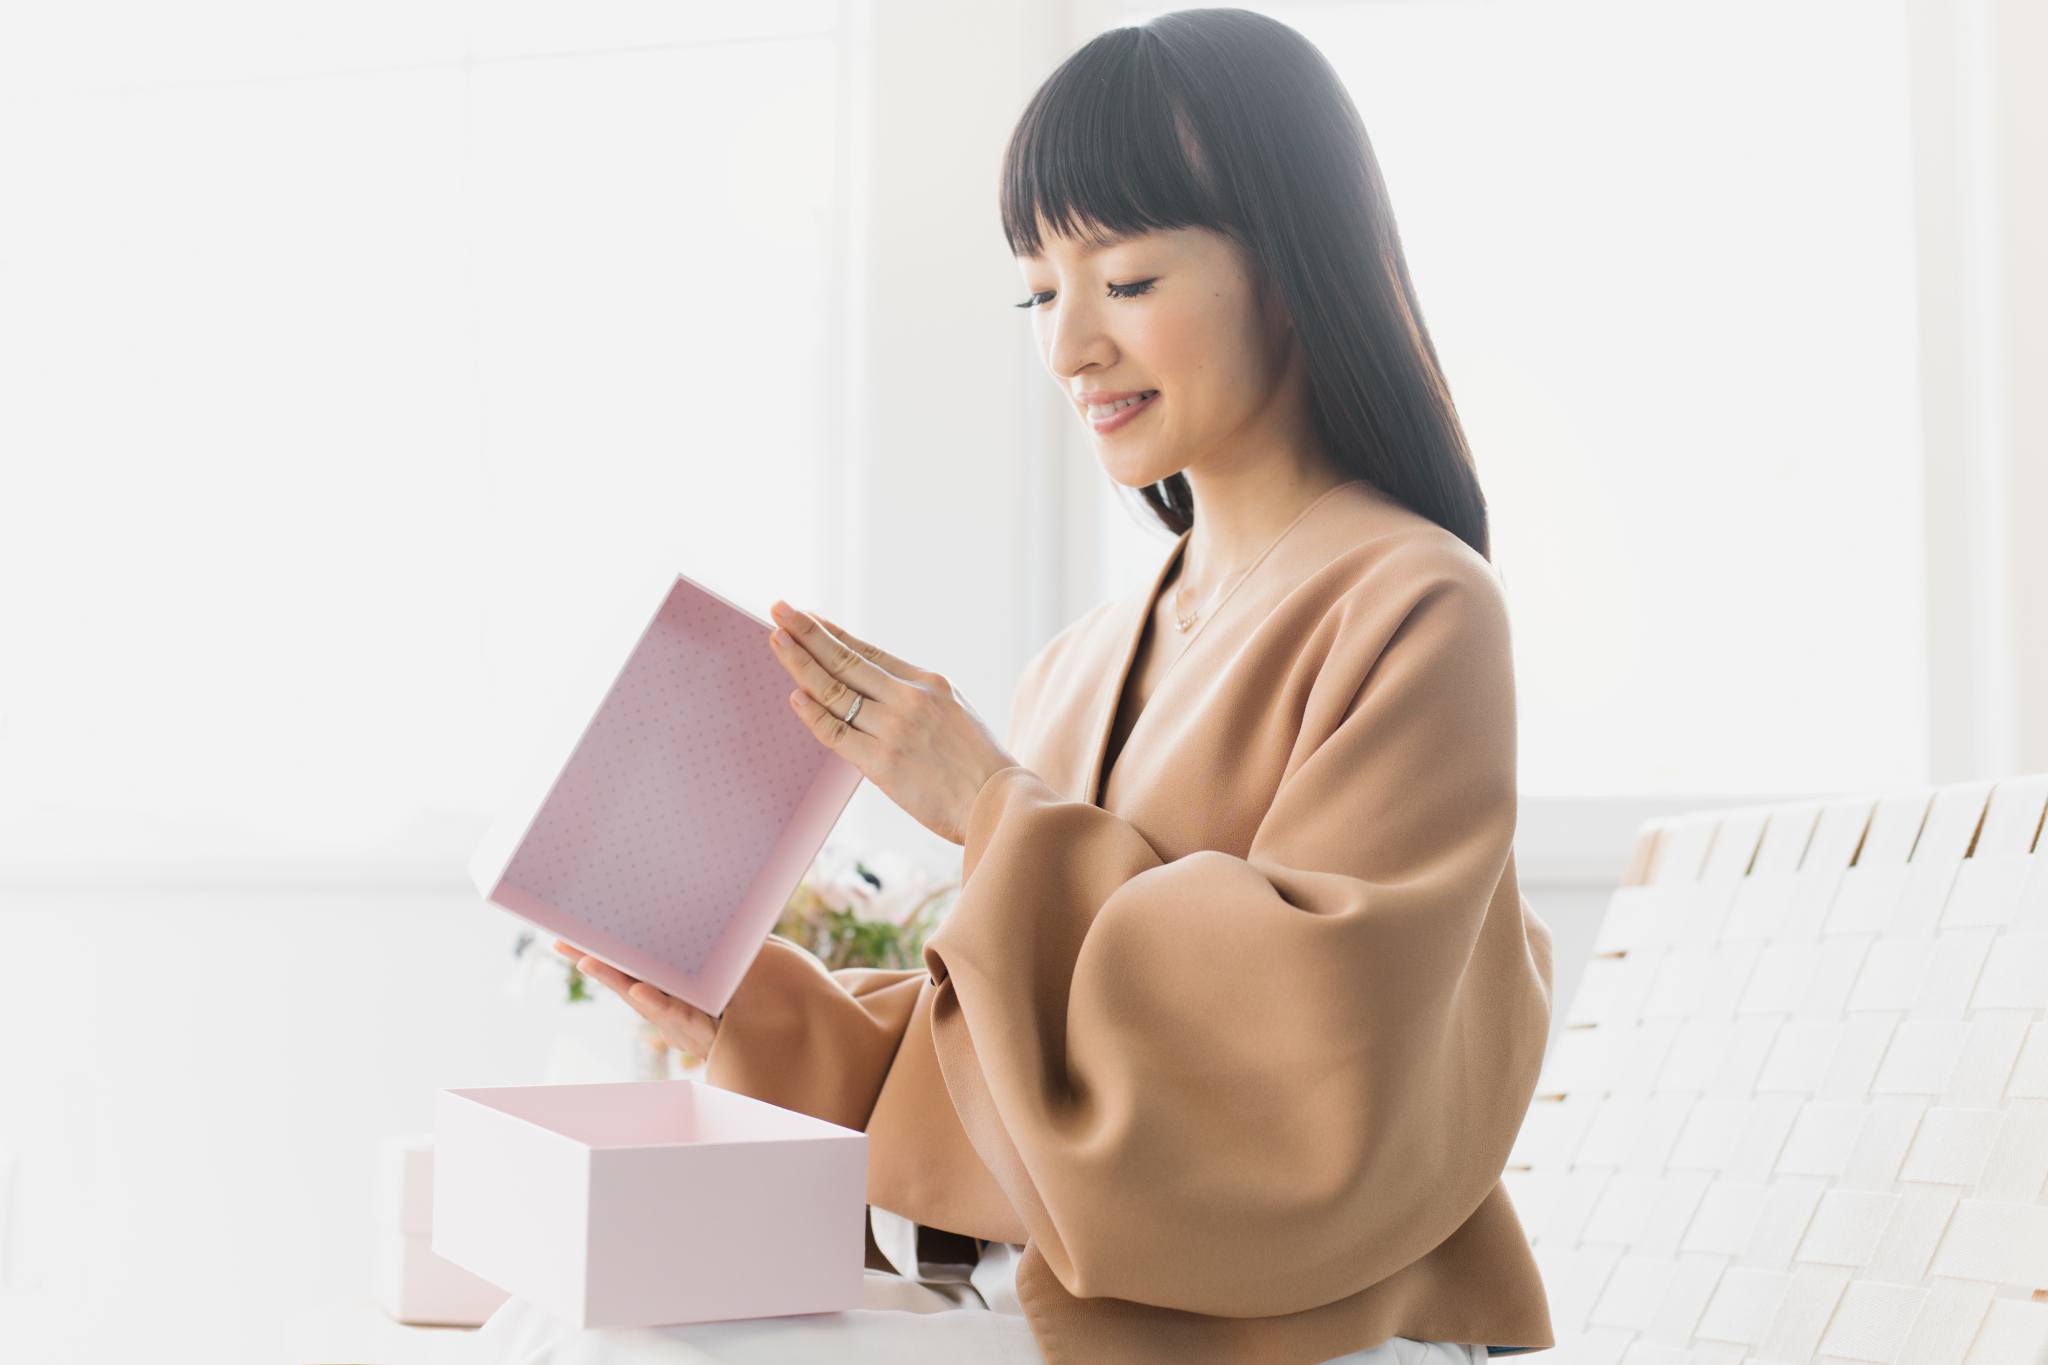 Marie Kondo Showed Us How Her New Organizing Boxes Work